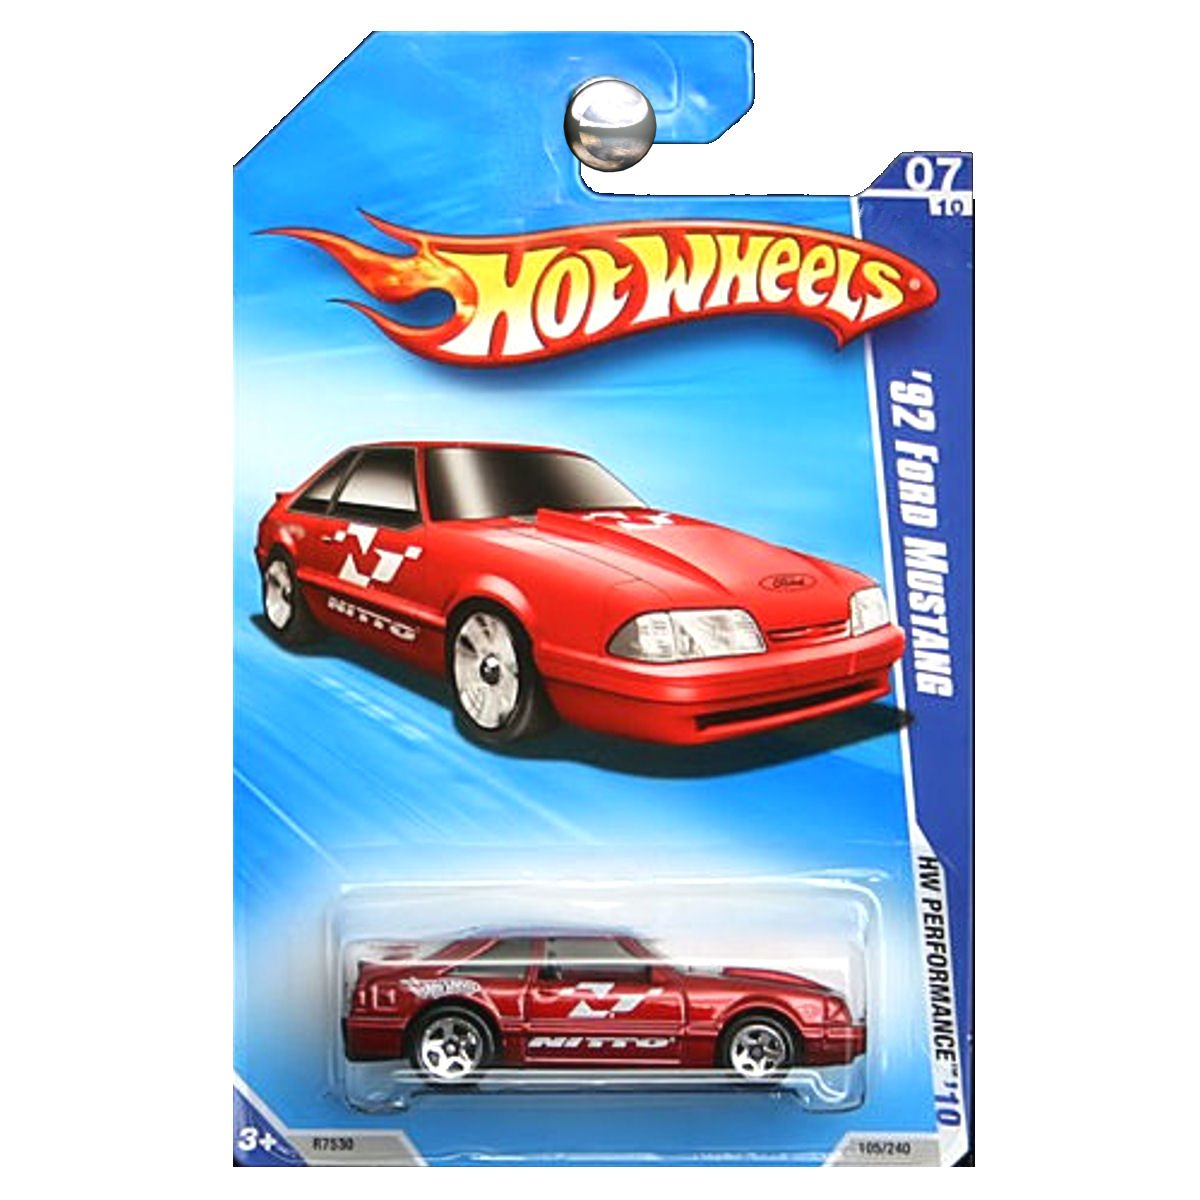 Amazon com hot wheels 2010 hw performance 1992 ford mustang red gt nitto fox body toys games